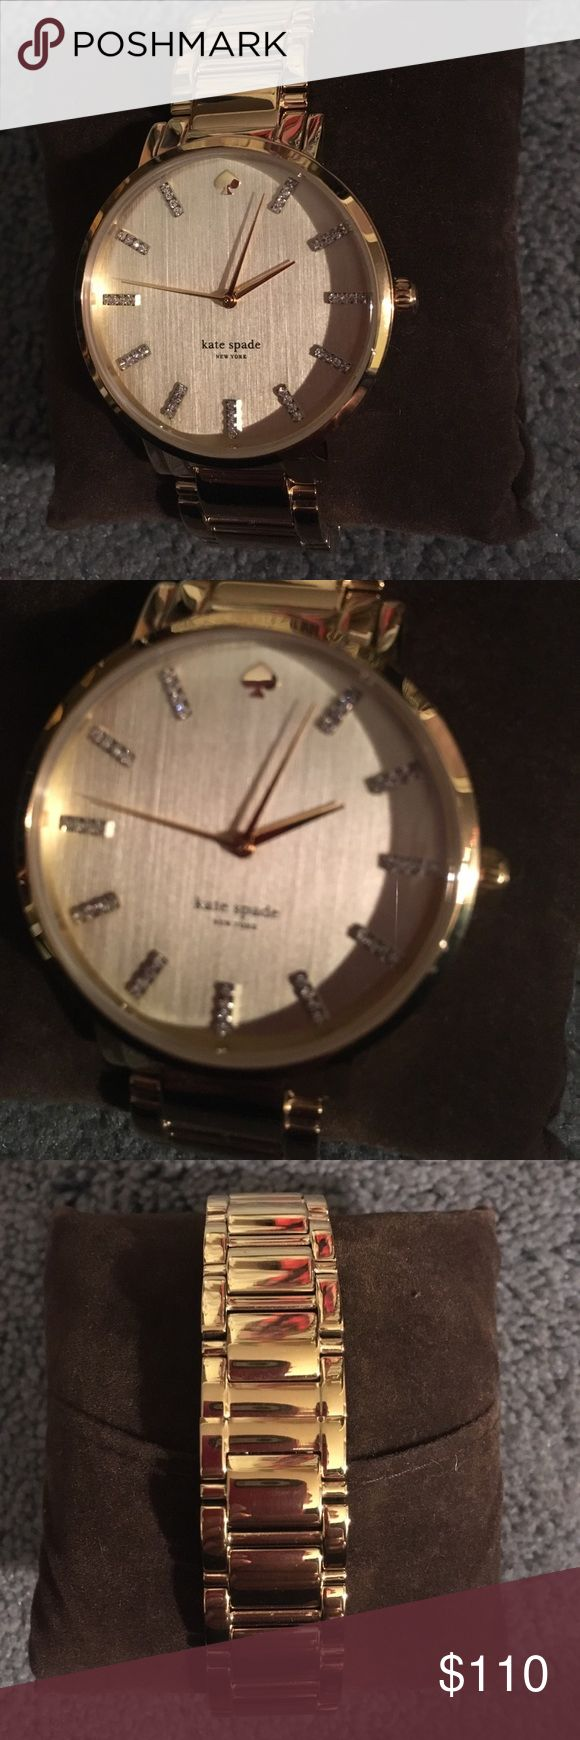 Kate Spade ♠️ gold watch Guaranteed authentic preowned gold with diamond numbers Kate Spade ♠️ watch.   Needs battery but still looks great. kate spade Accessories Watches